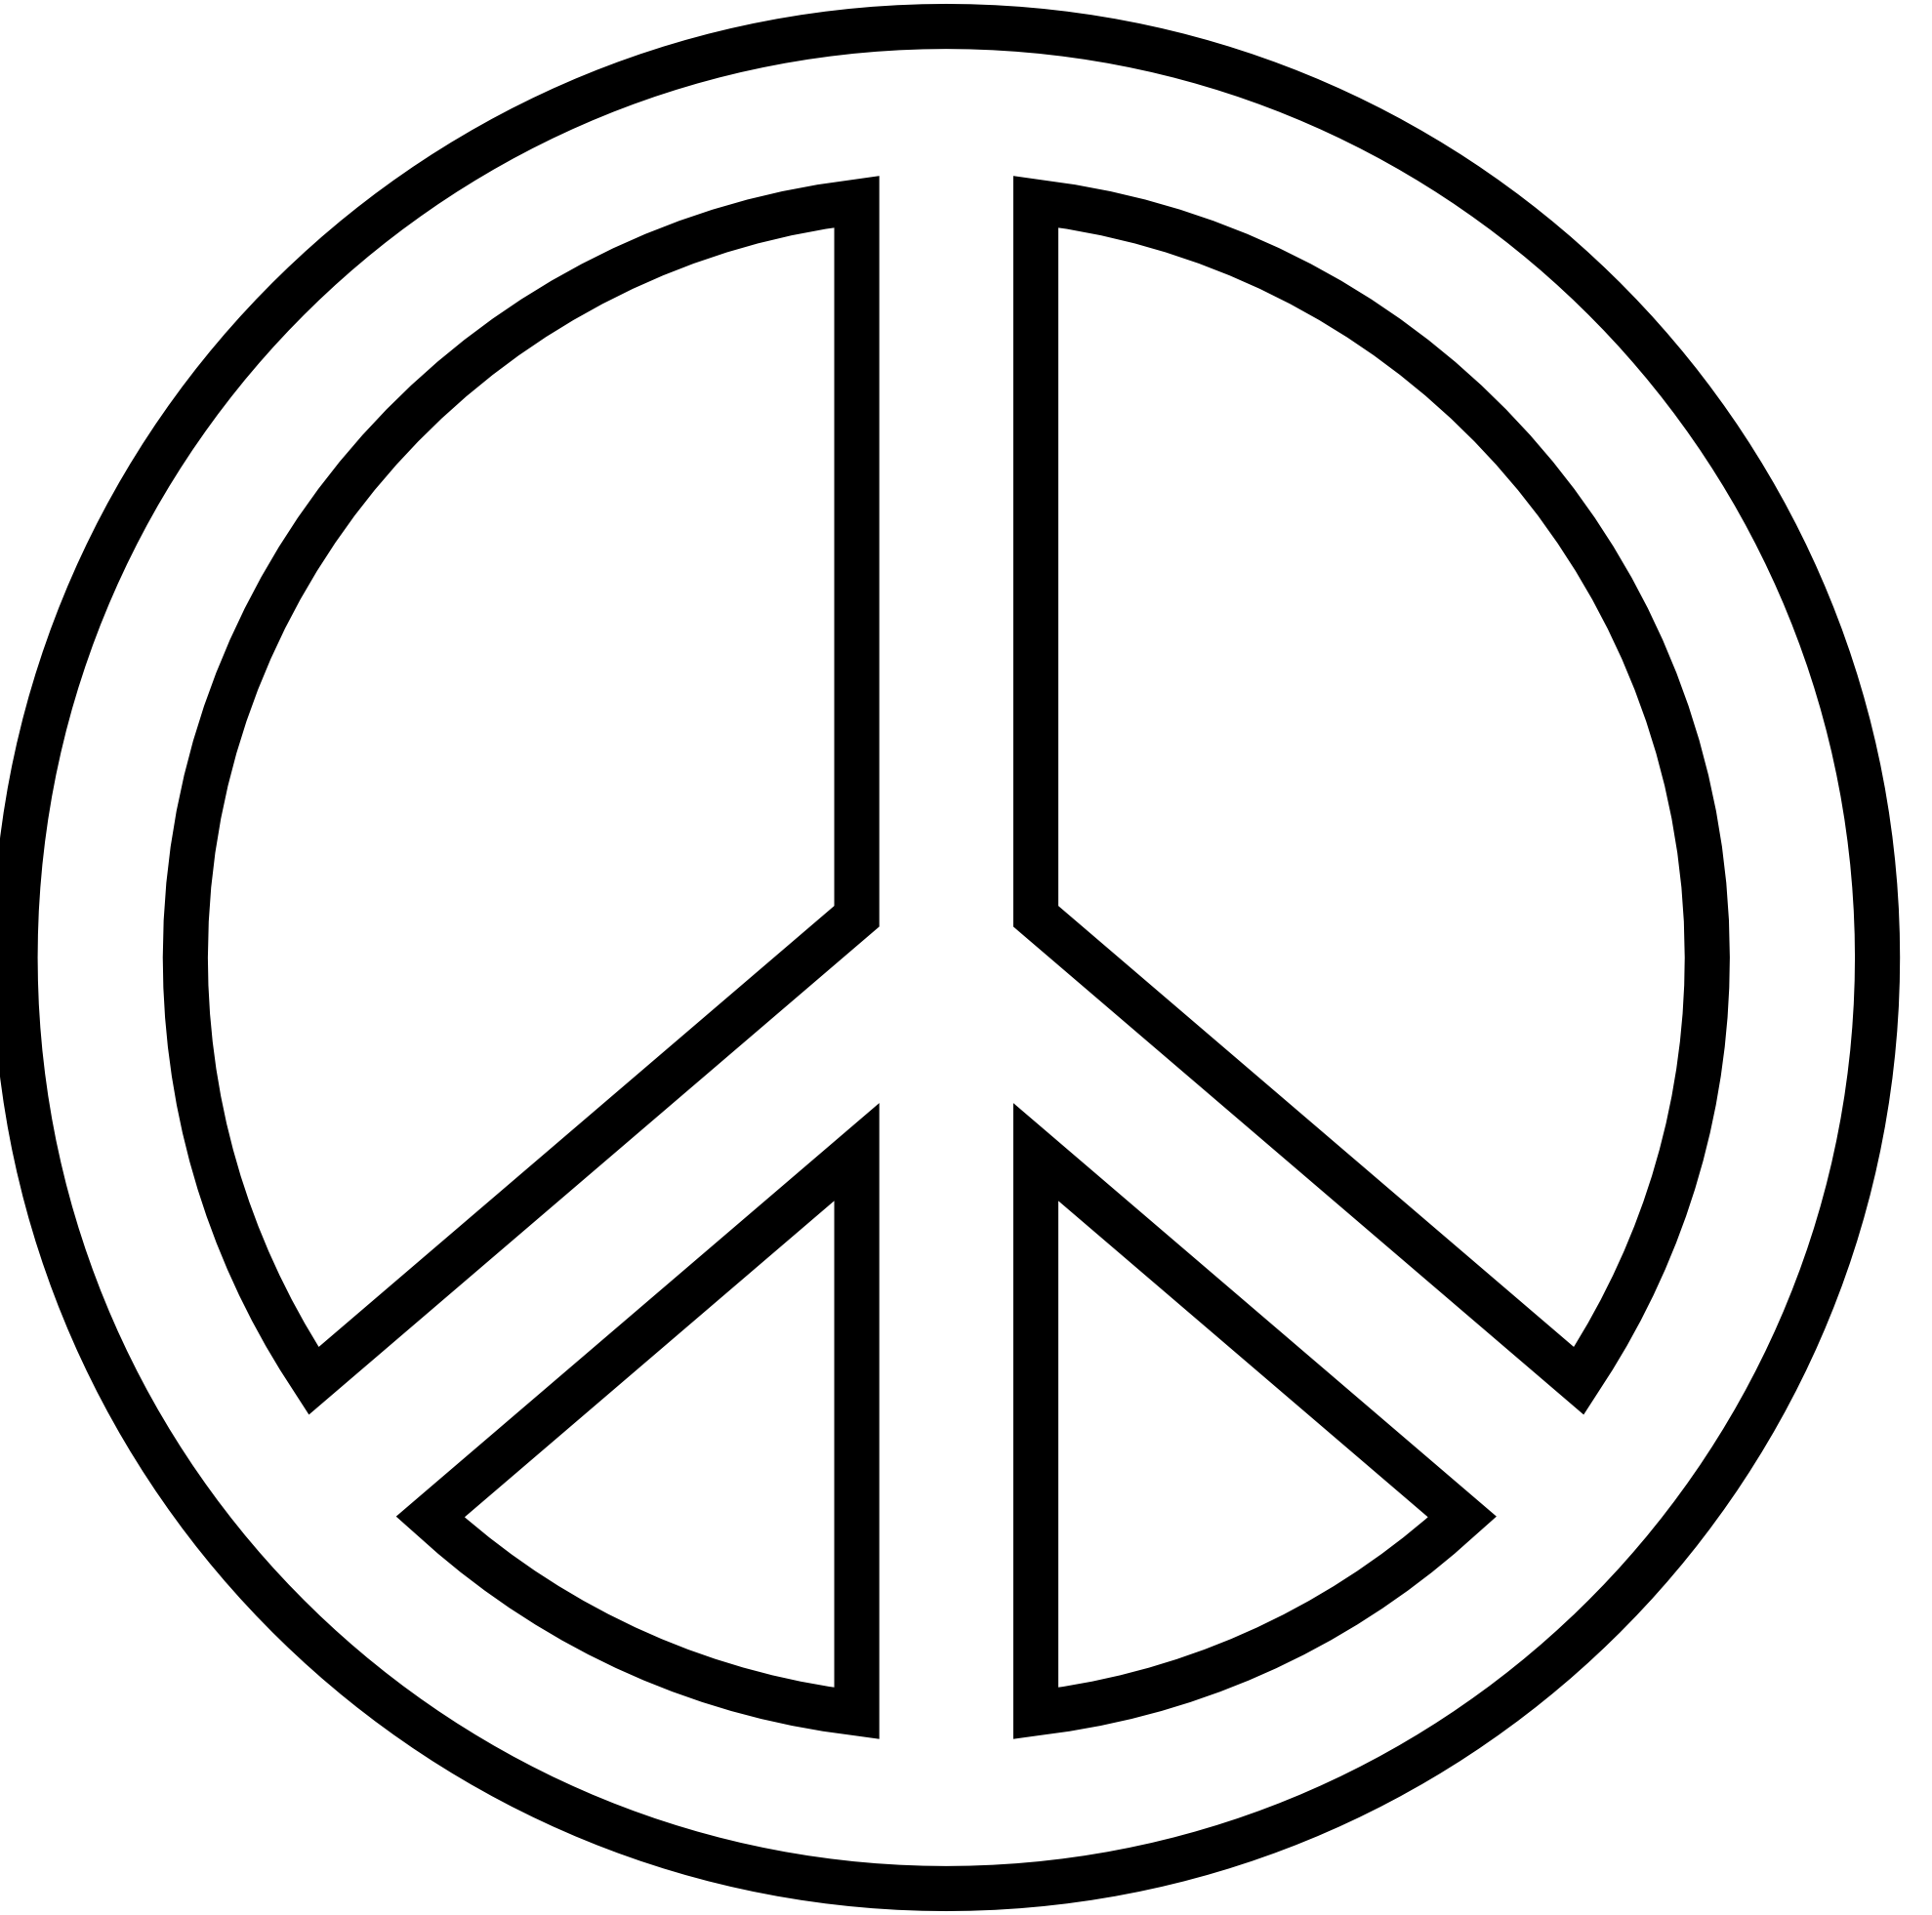 Saw clipart symbol. Free peace sign download